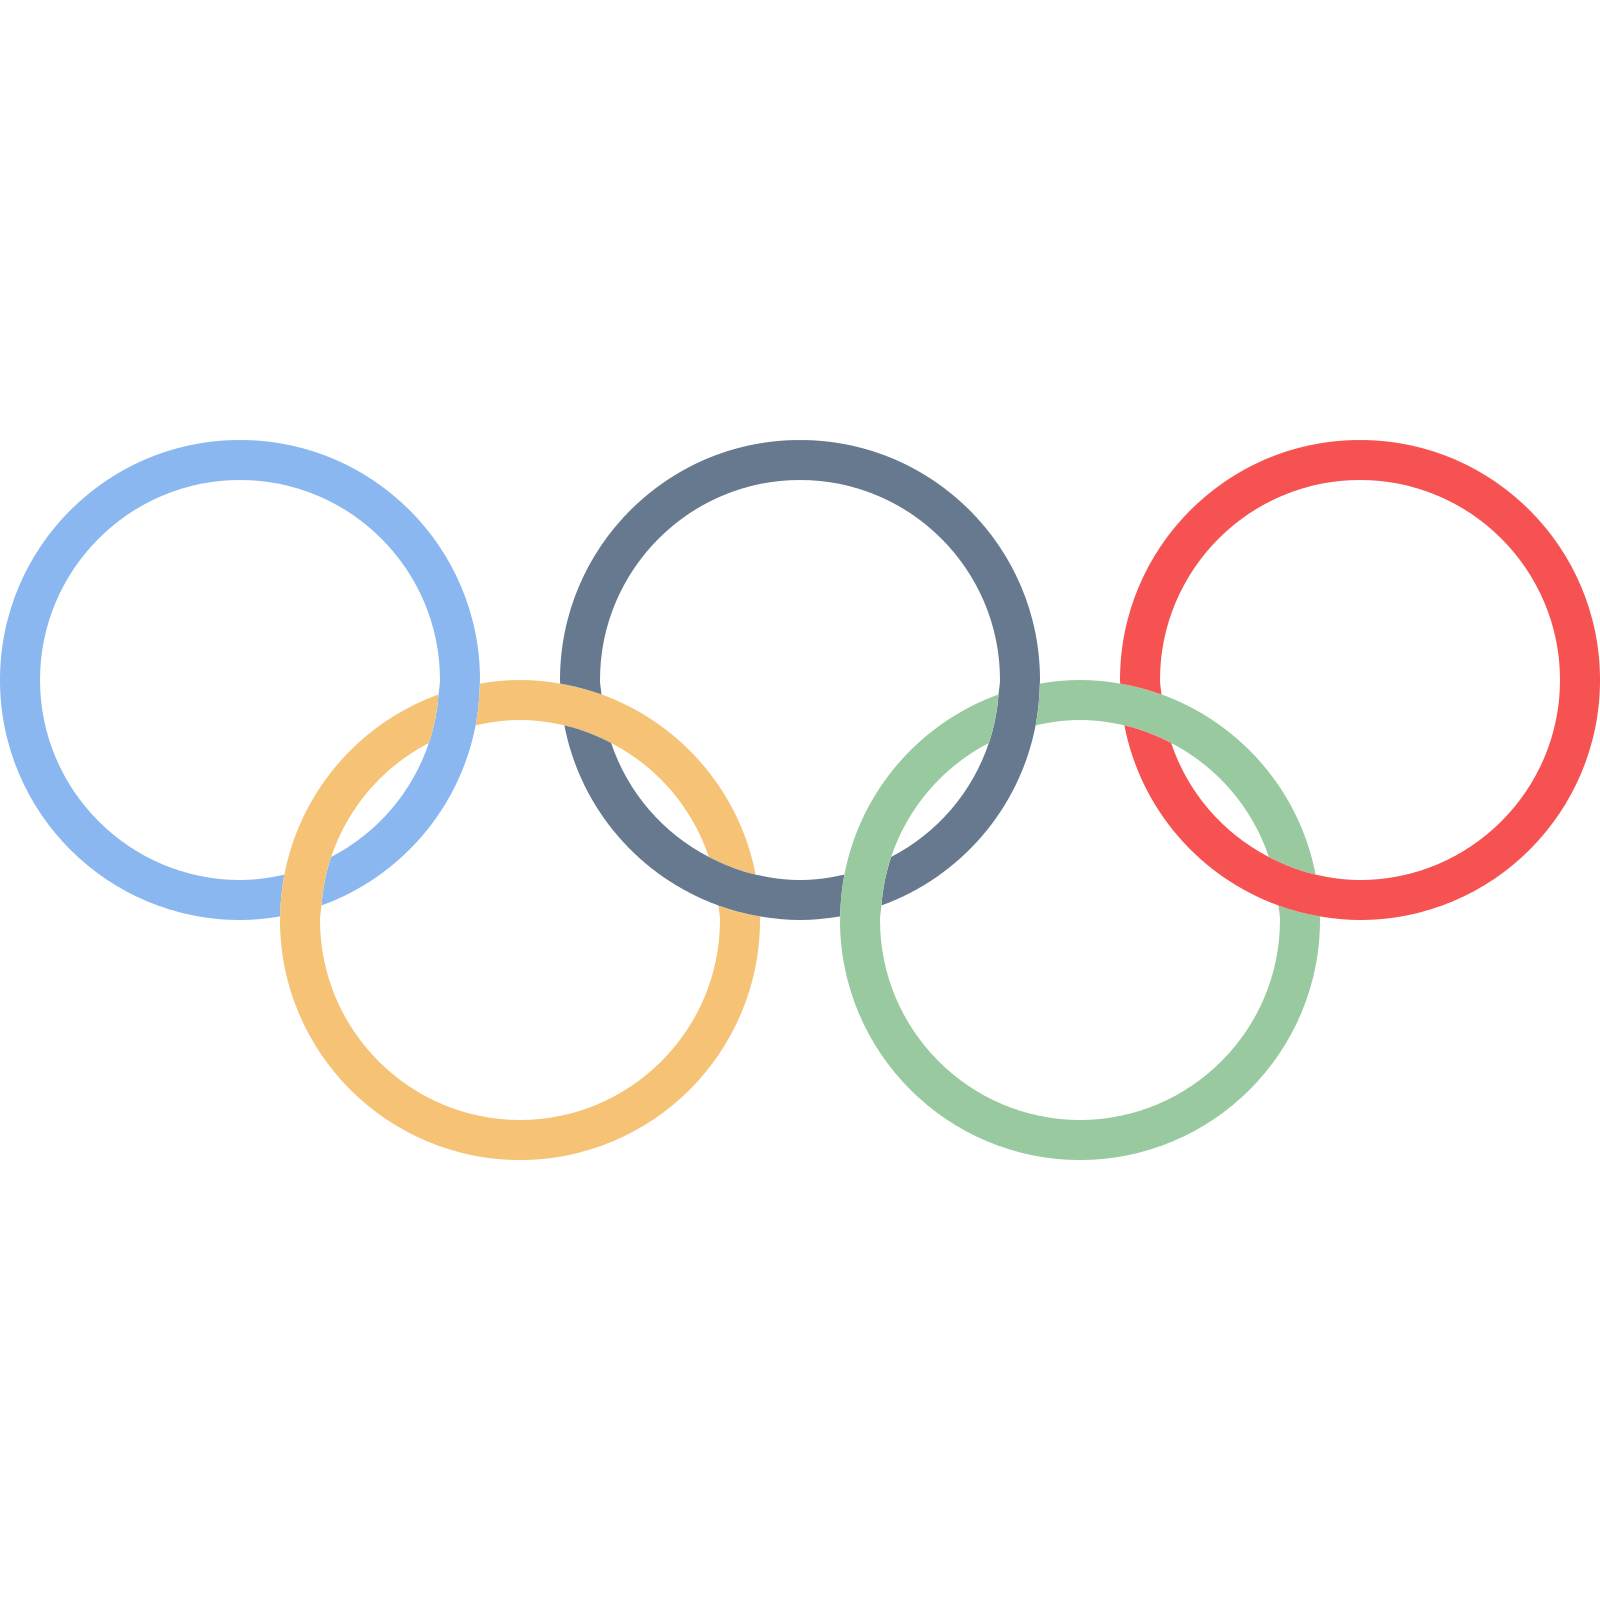 Games clipart olympic. Rings png images free